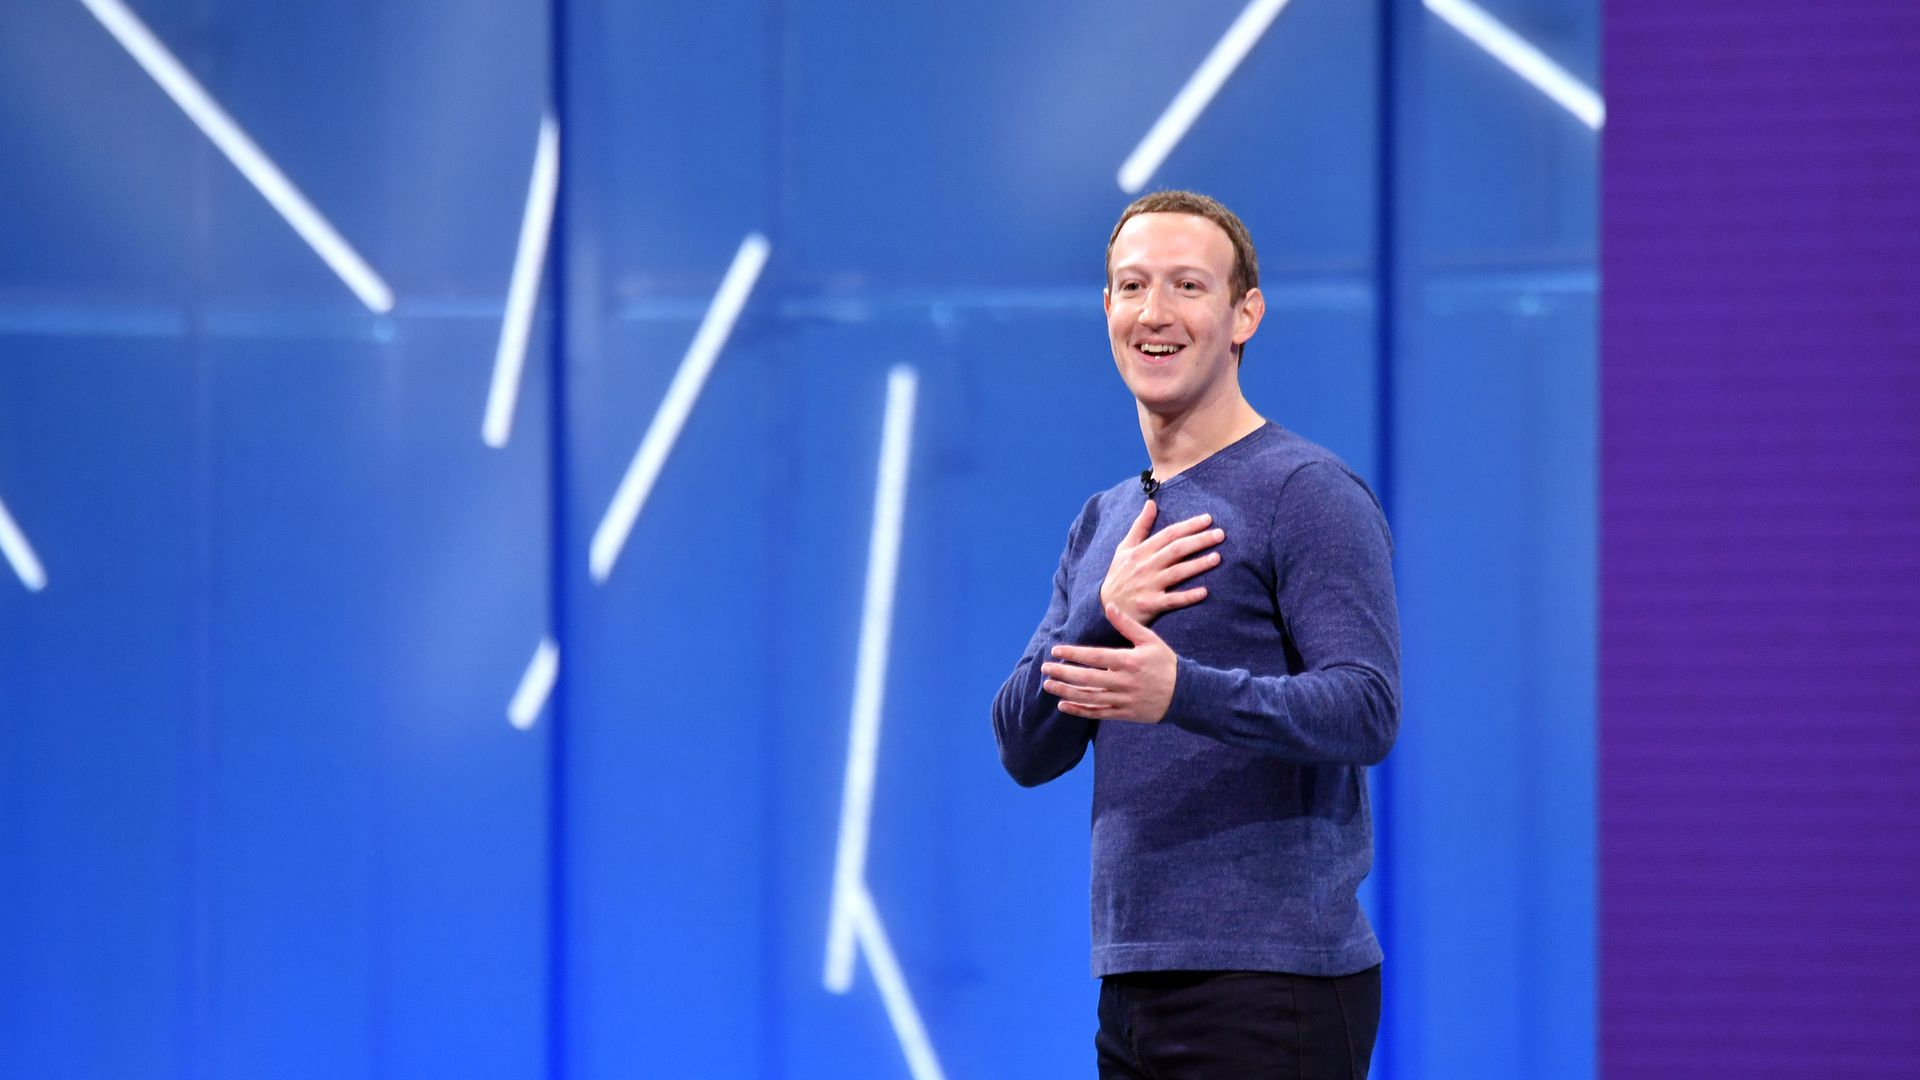 Mark Zuckerberg on stage with hand on heart